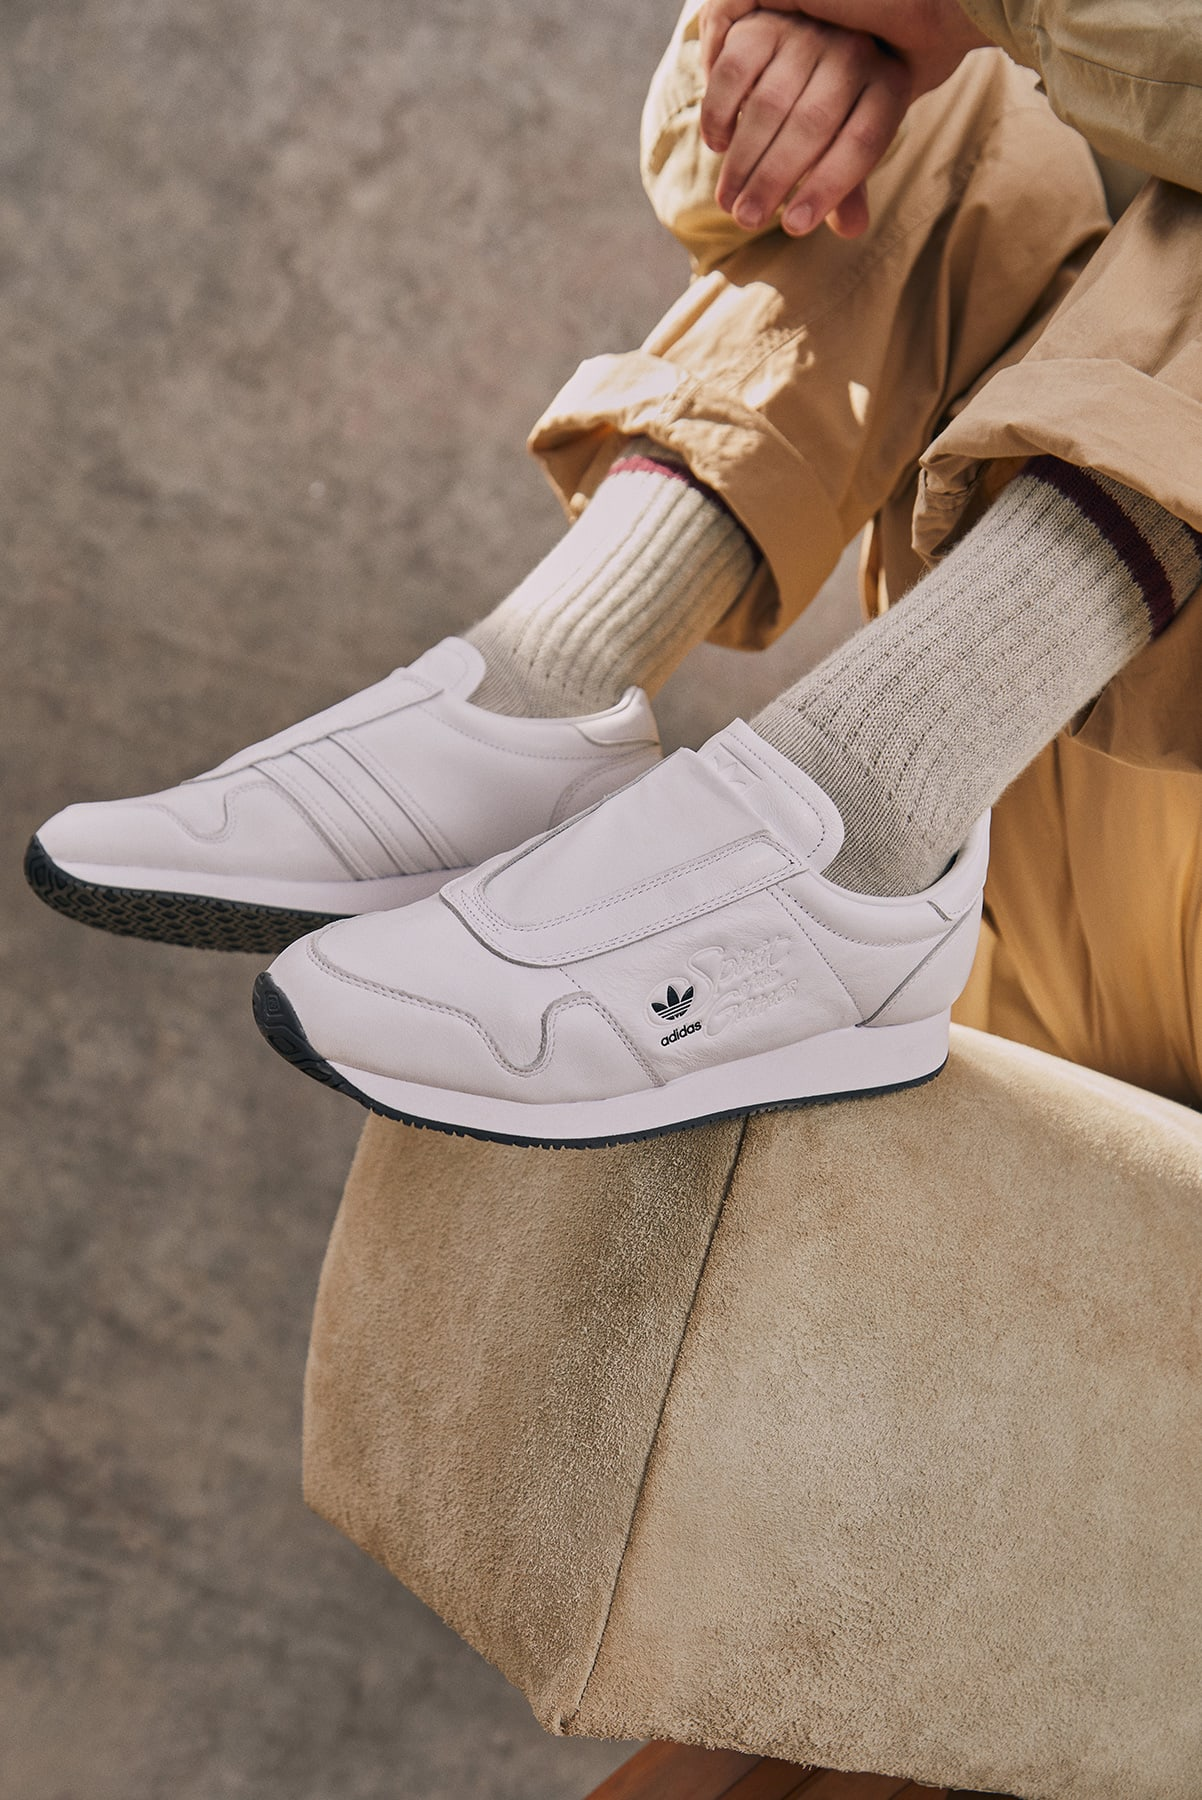 adidas x Beams Spirit of the Games Slip On END. Exclusive - H02464